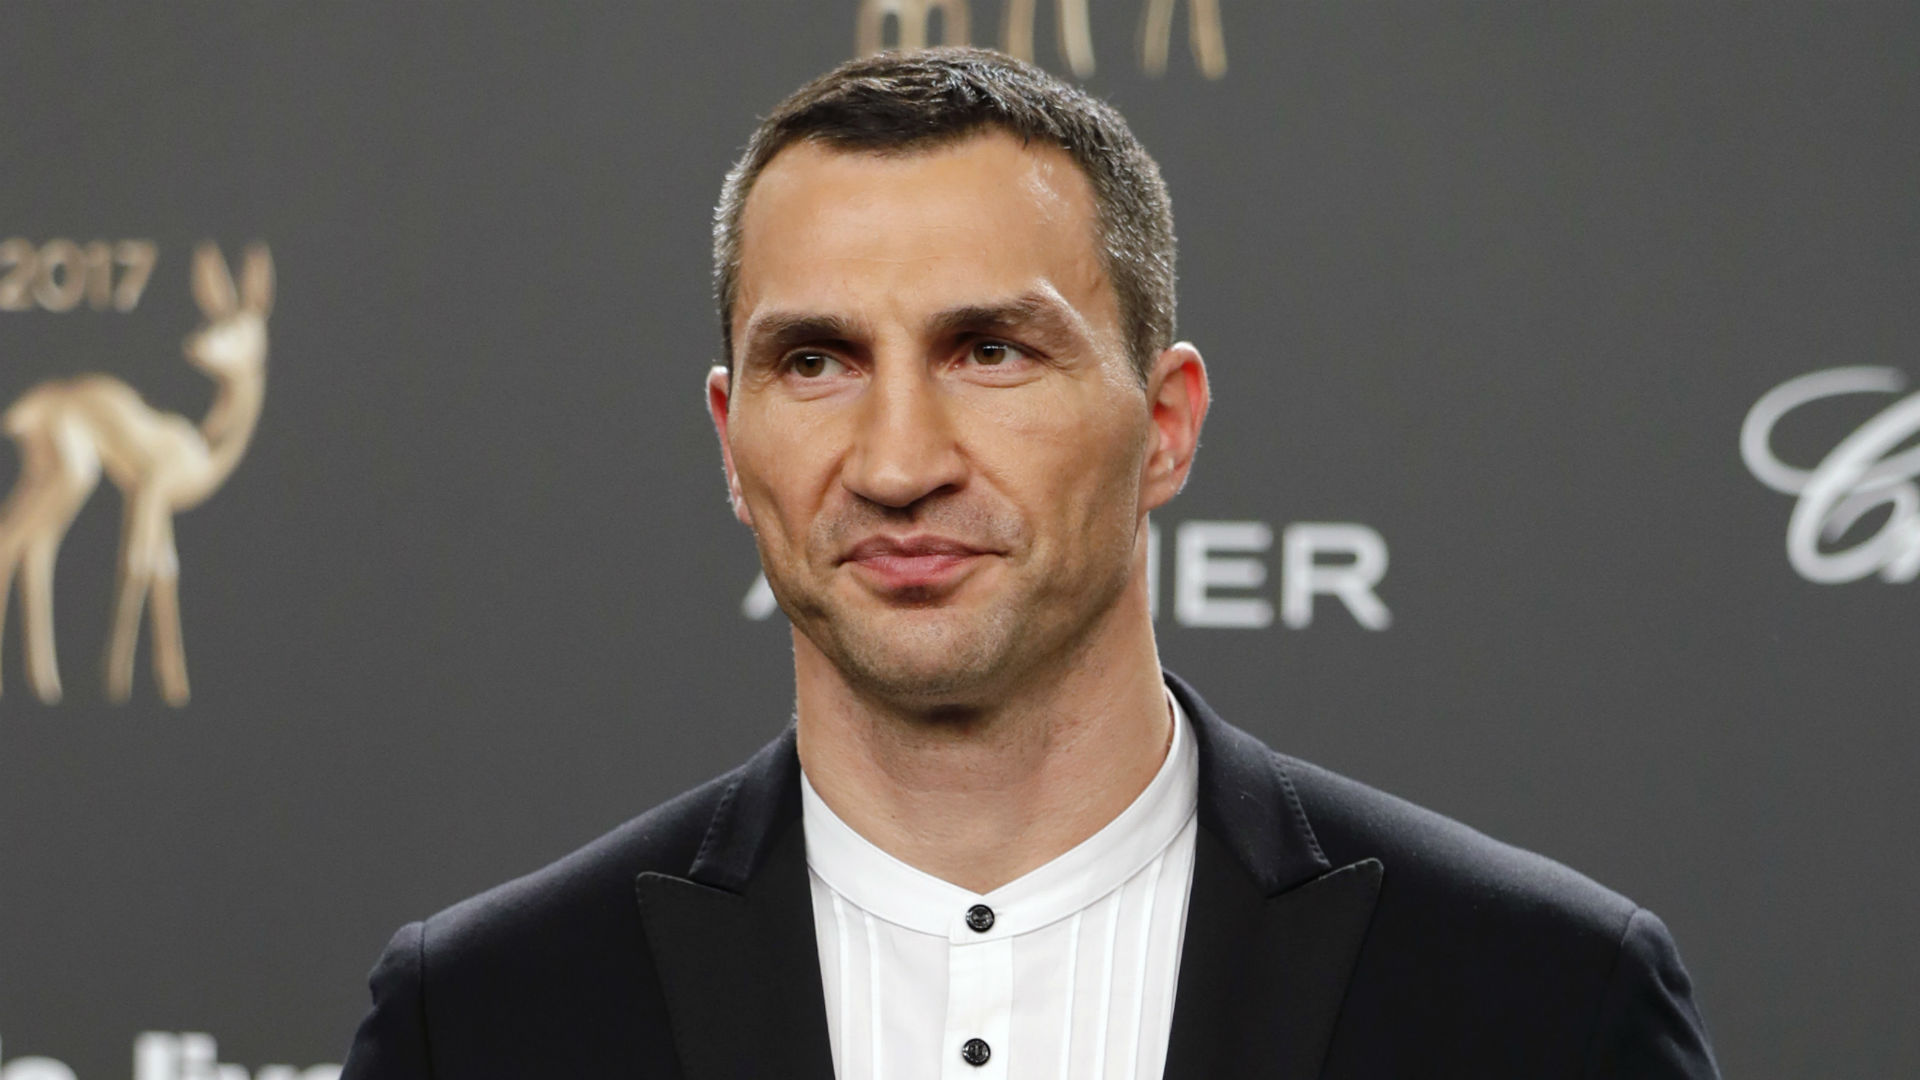 Wladimir Klitschko rescued from yacht after fire